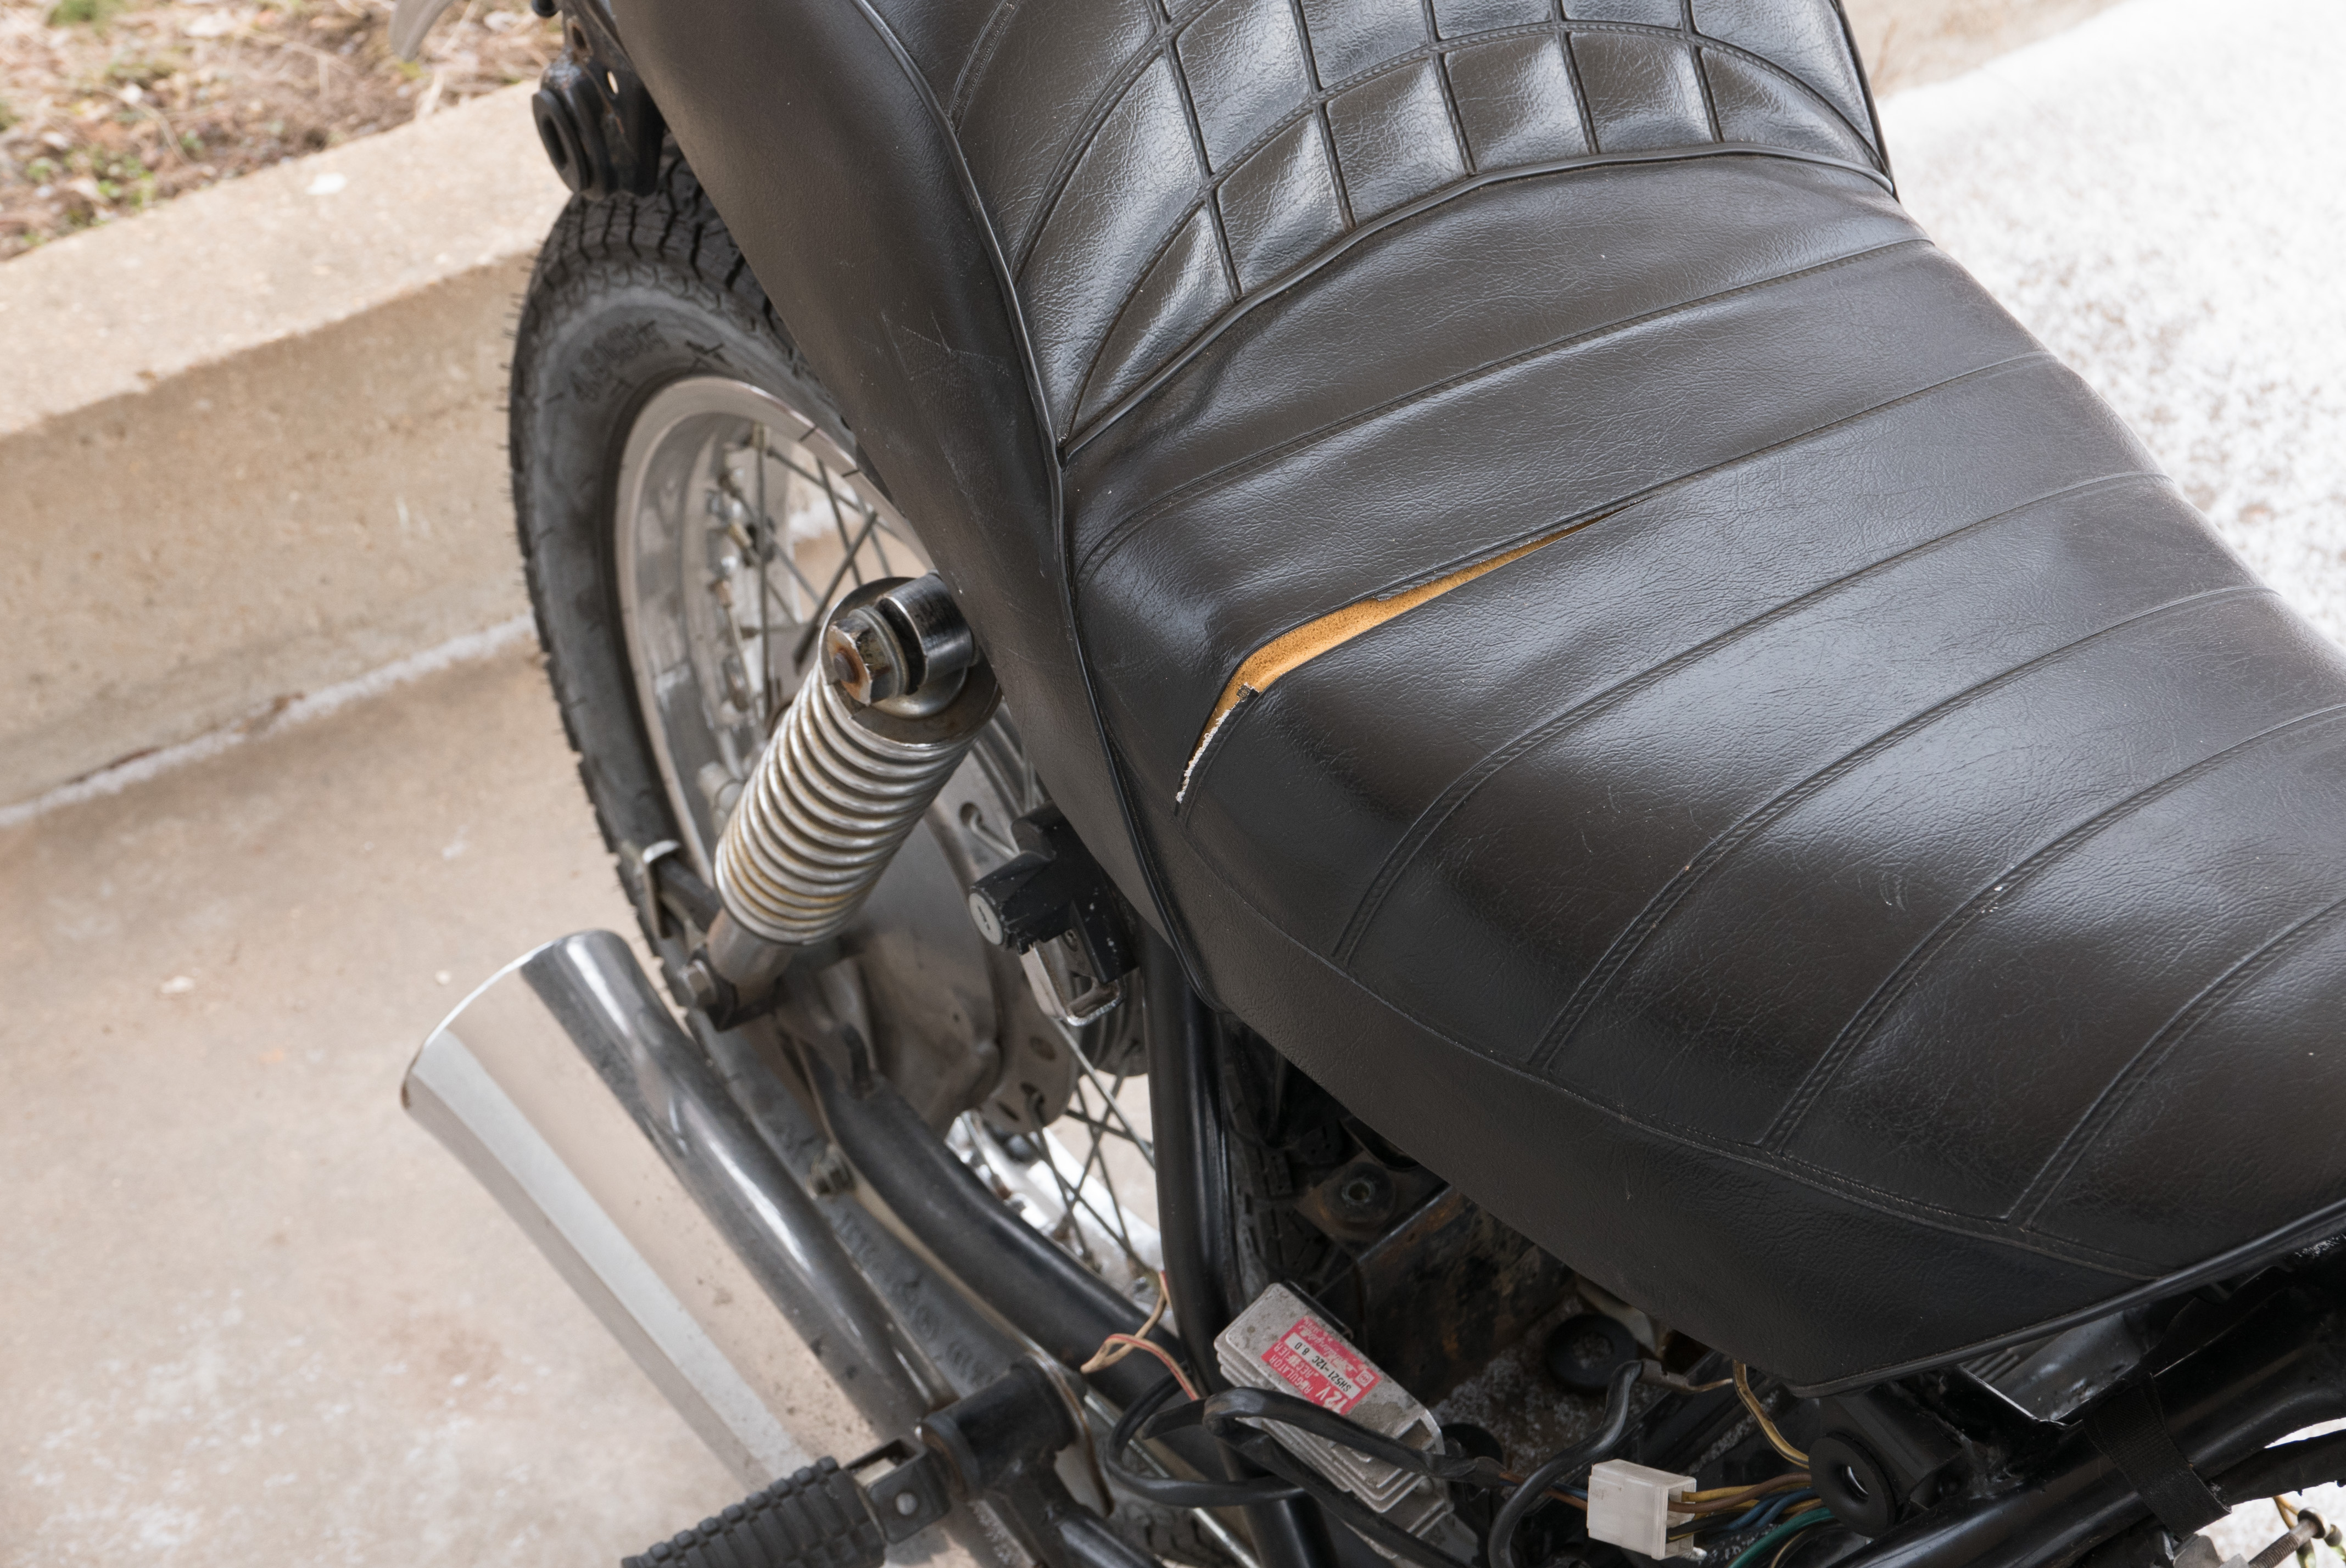 vinyl chair repair kit wood leather office motorcycle seat liquid electrical tape pcb isolation there isn t a whole lot you can do to hide 10 split which is problem for my 83 kawasaki 305 friend had success using fix